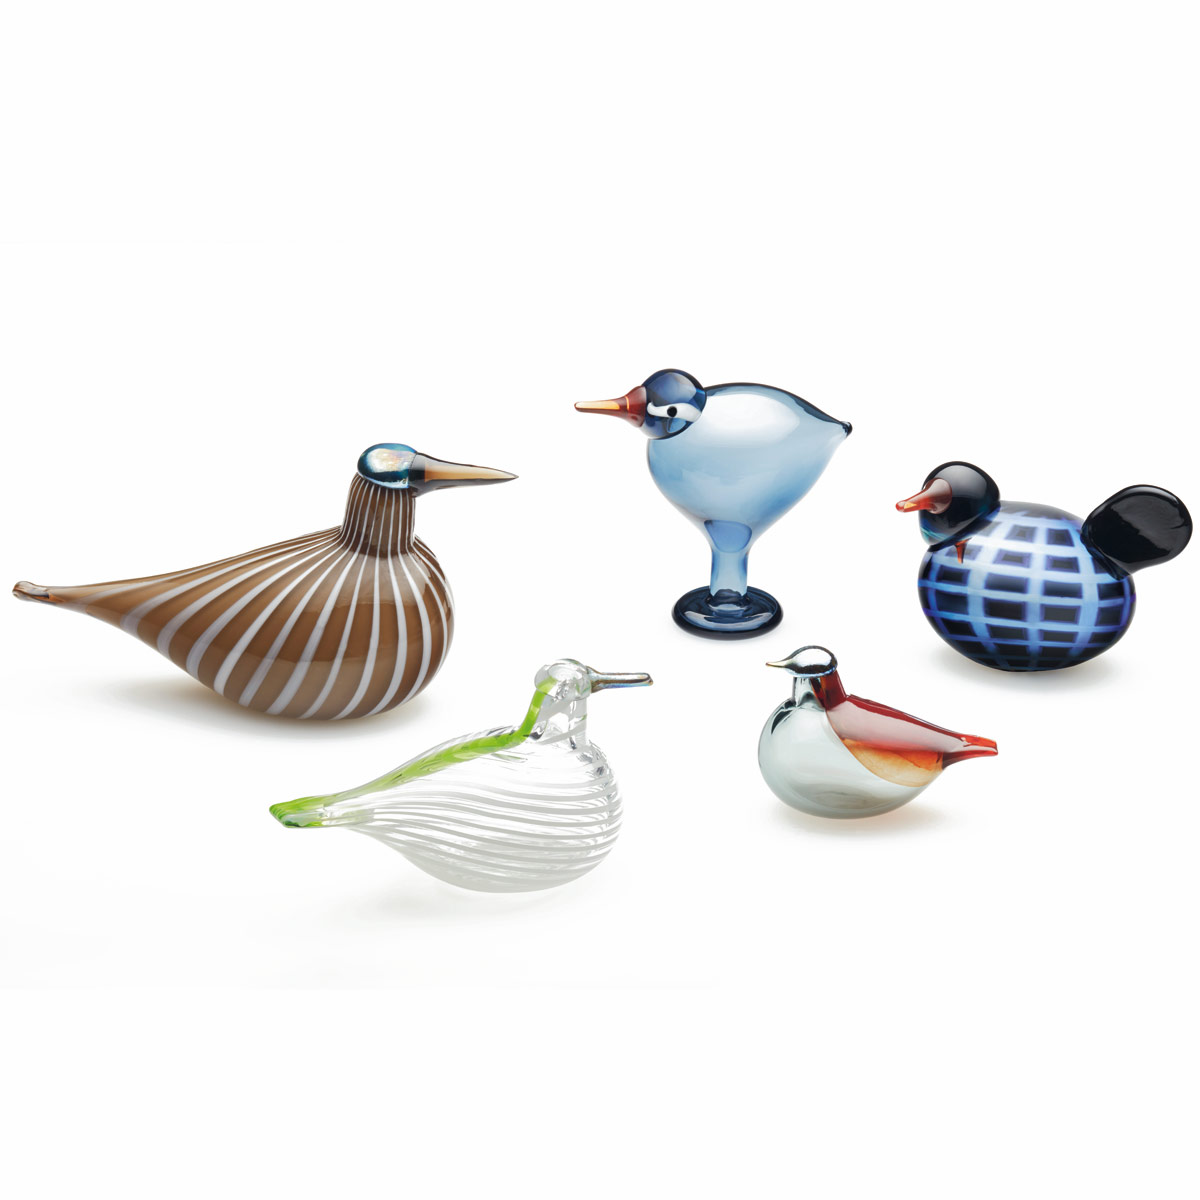 iittala toikka bird and the city set  limited edition toikka  - iittala toikka bird and the city set  click to enlarge